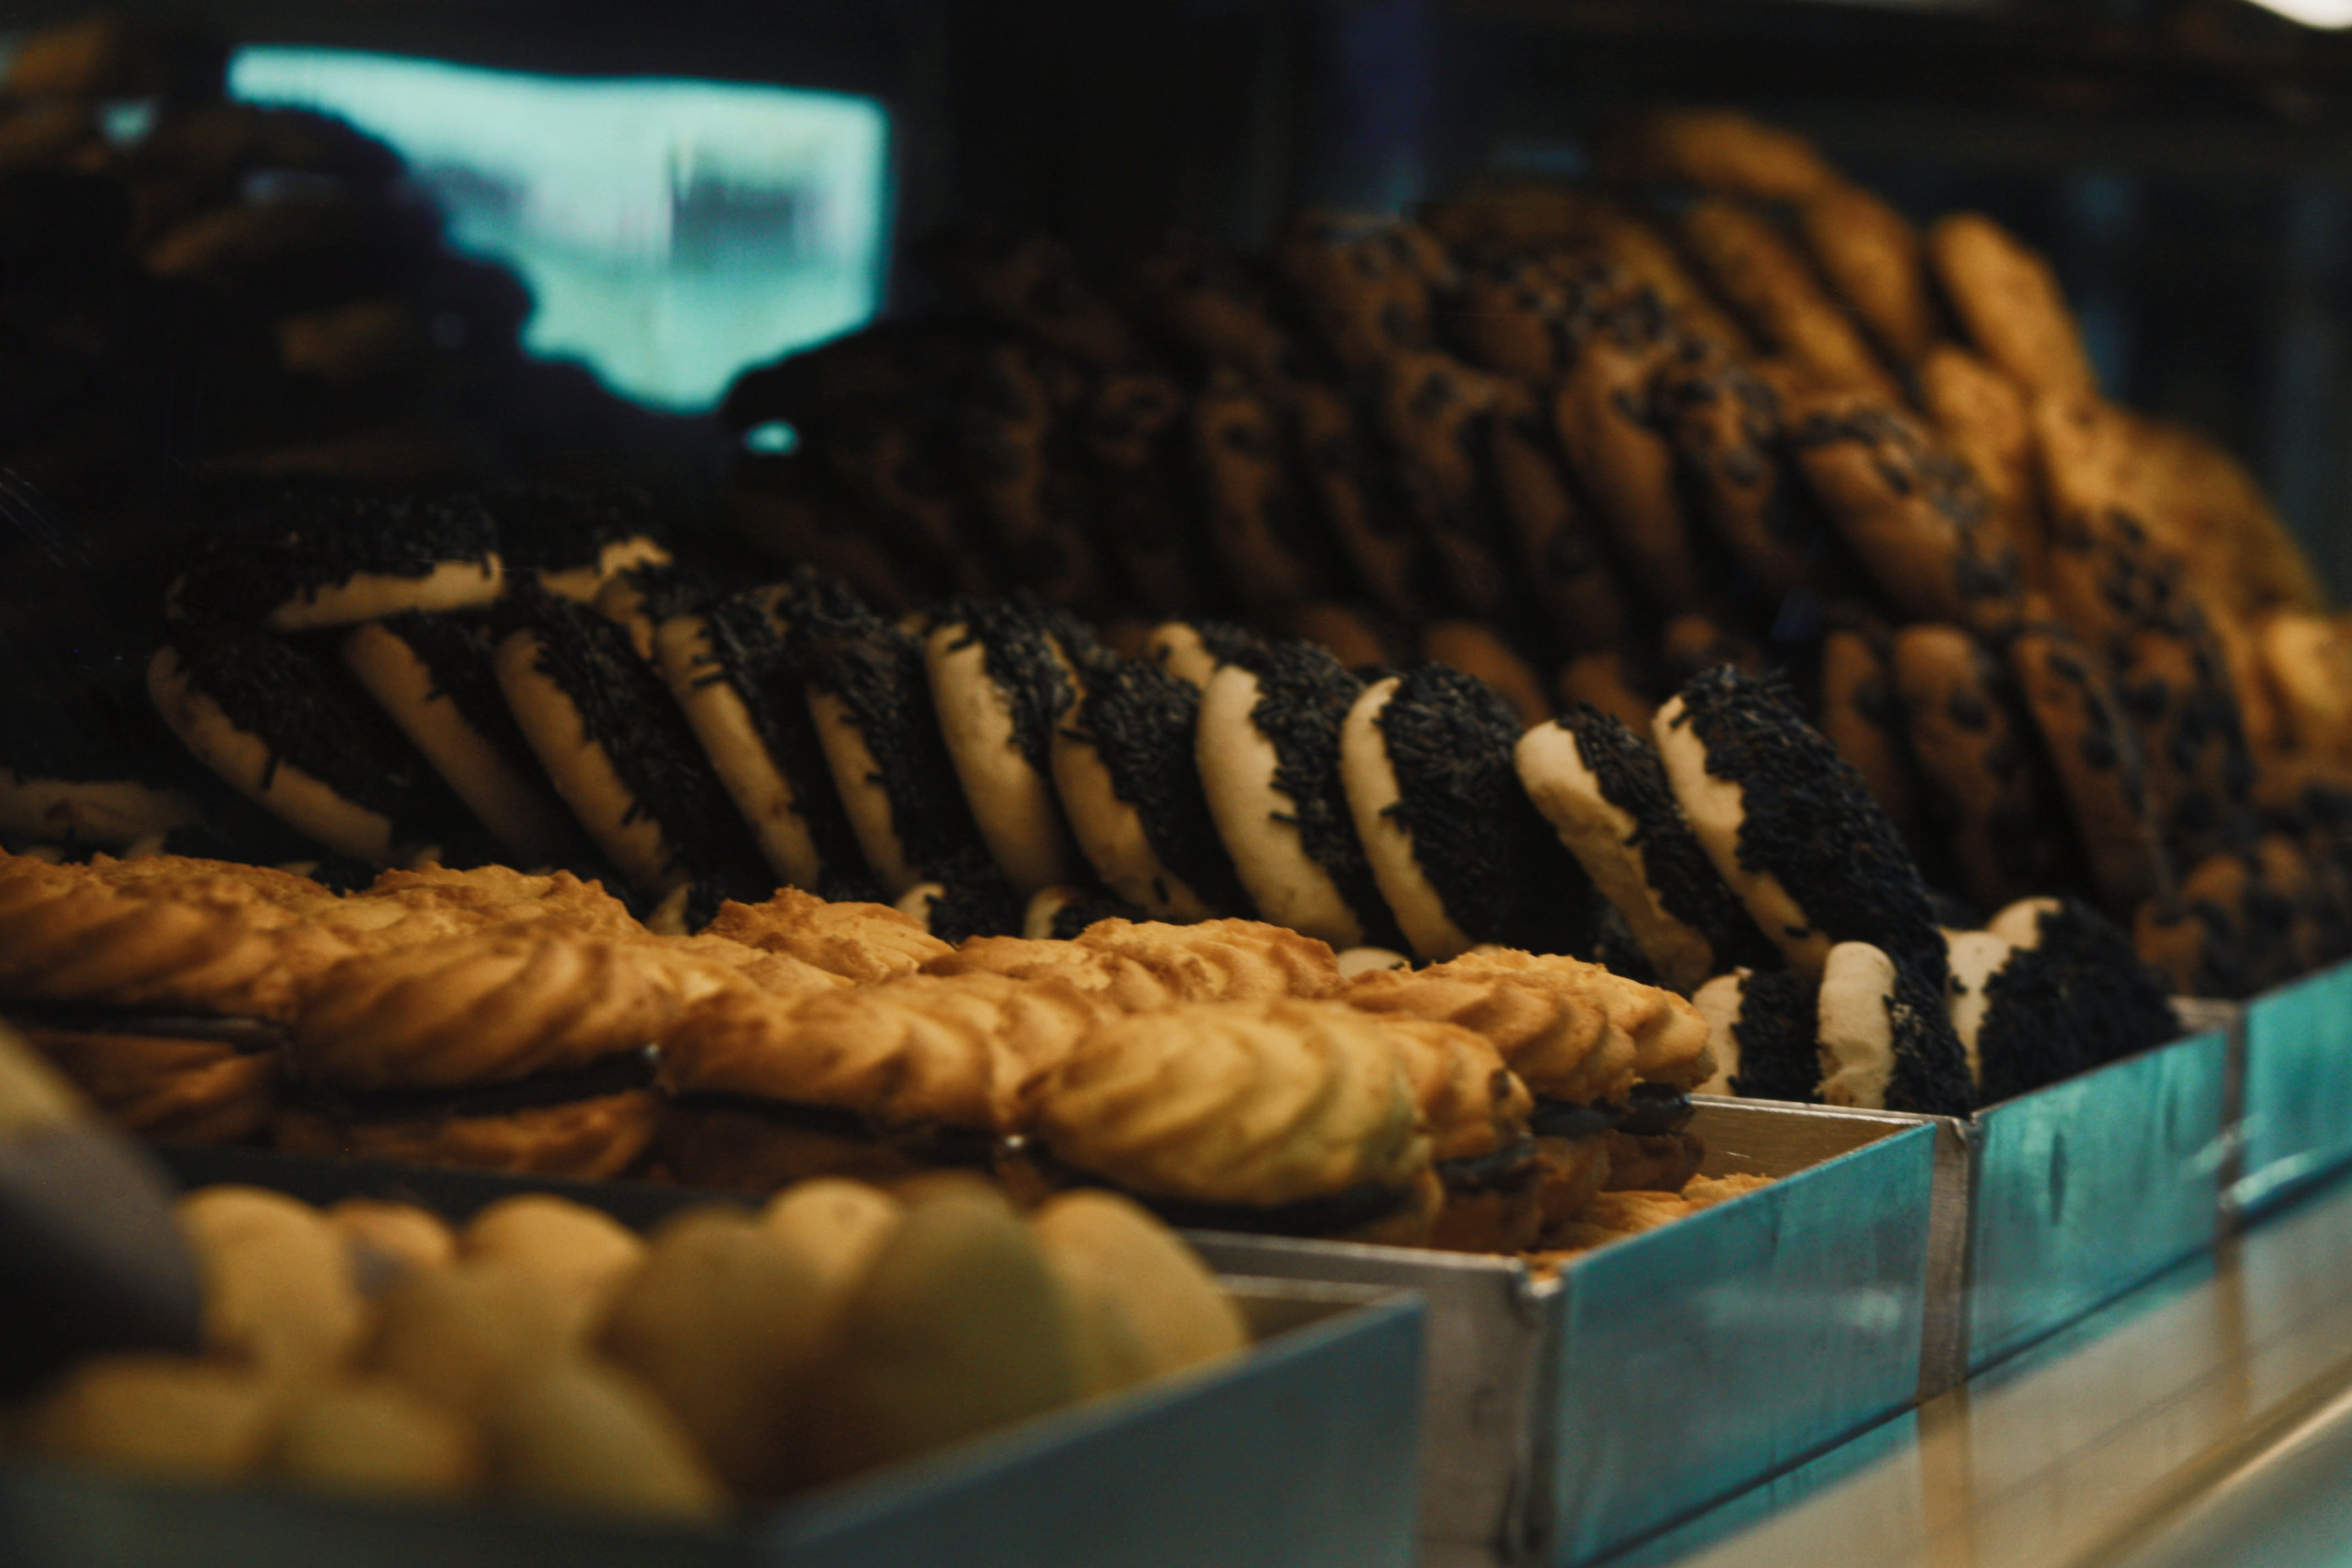 Selective Focus Photography of Doughnut and Cookies